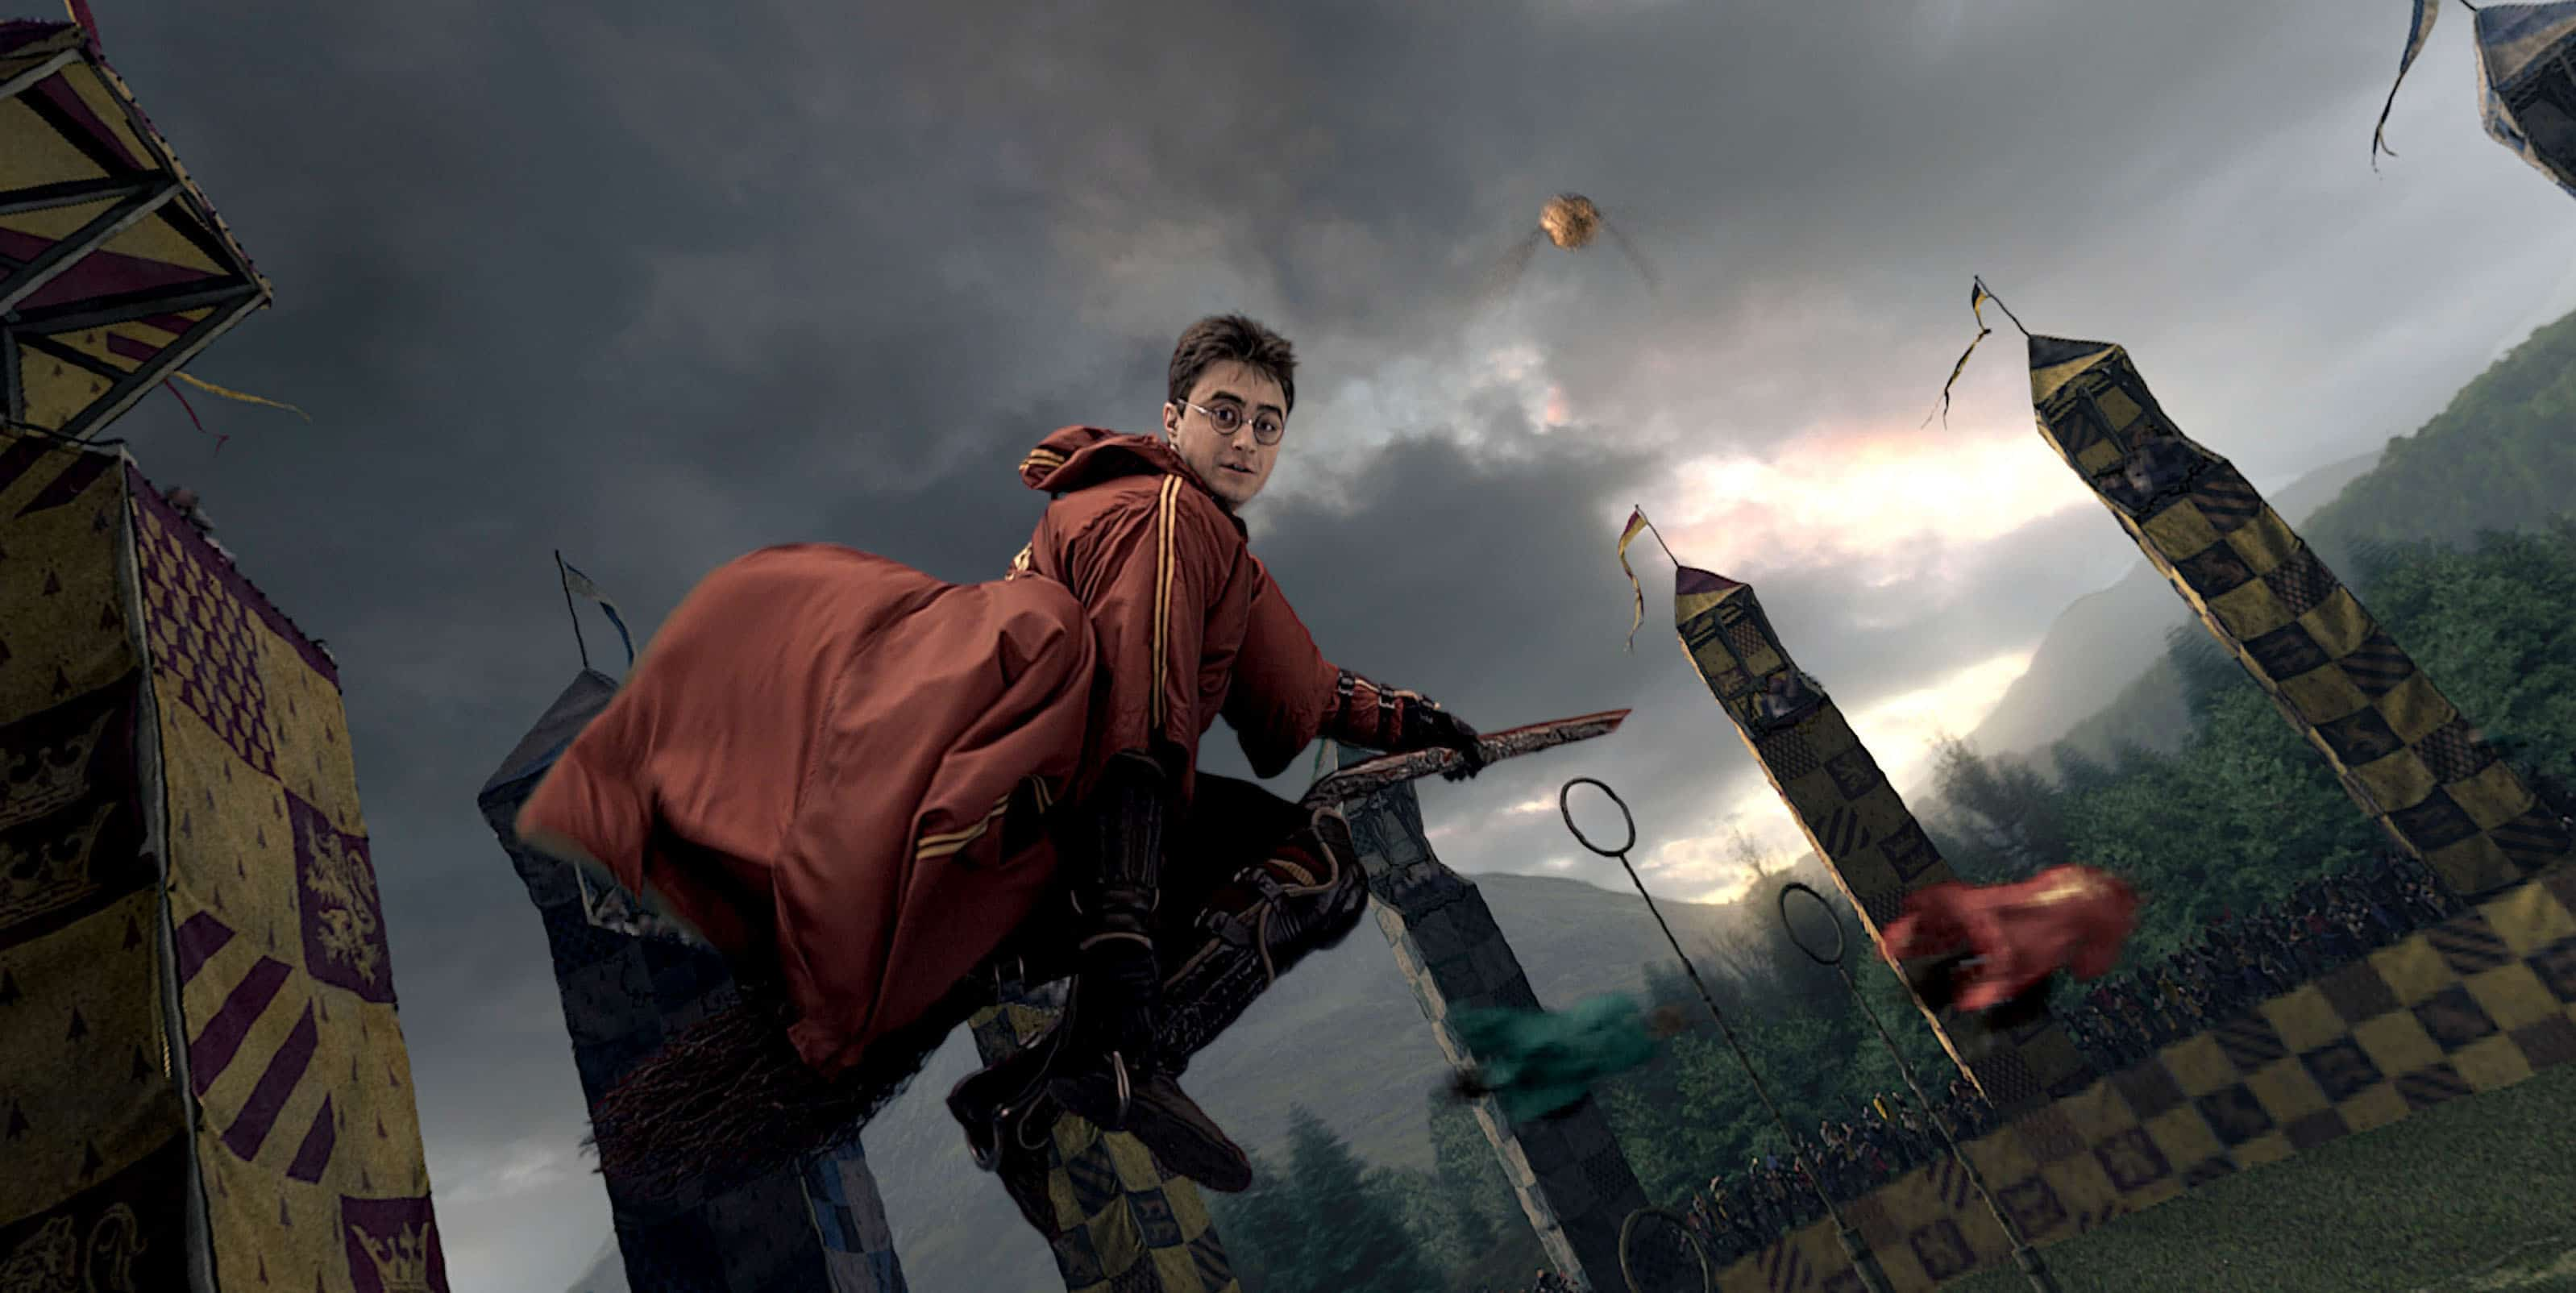 ALL Harry Potter rides receive Express Pass access